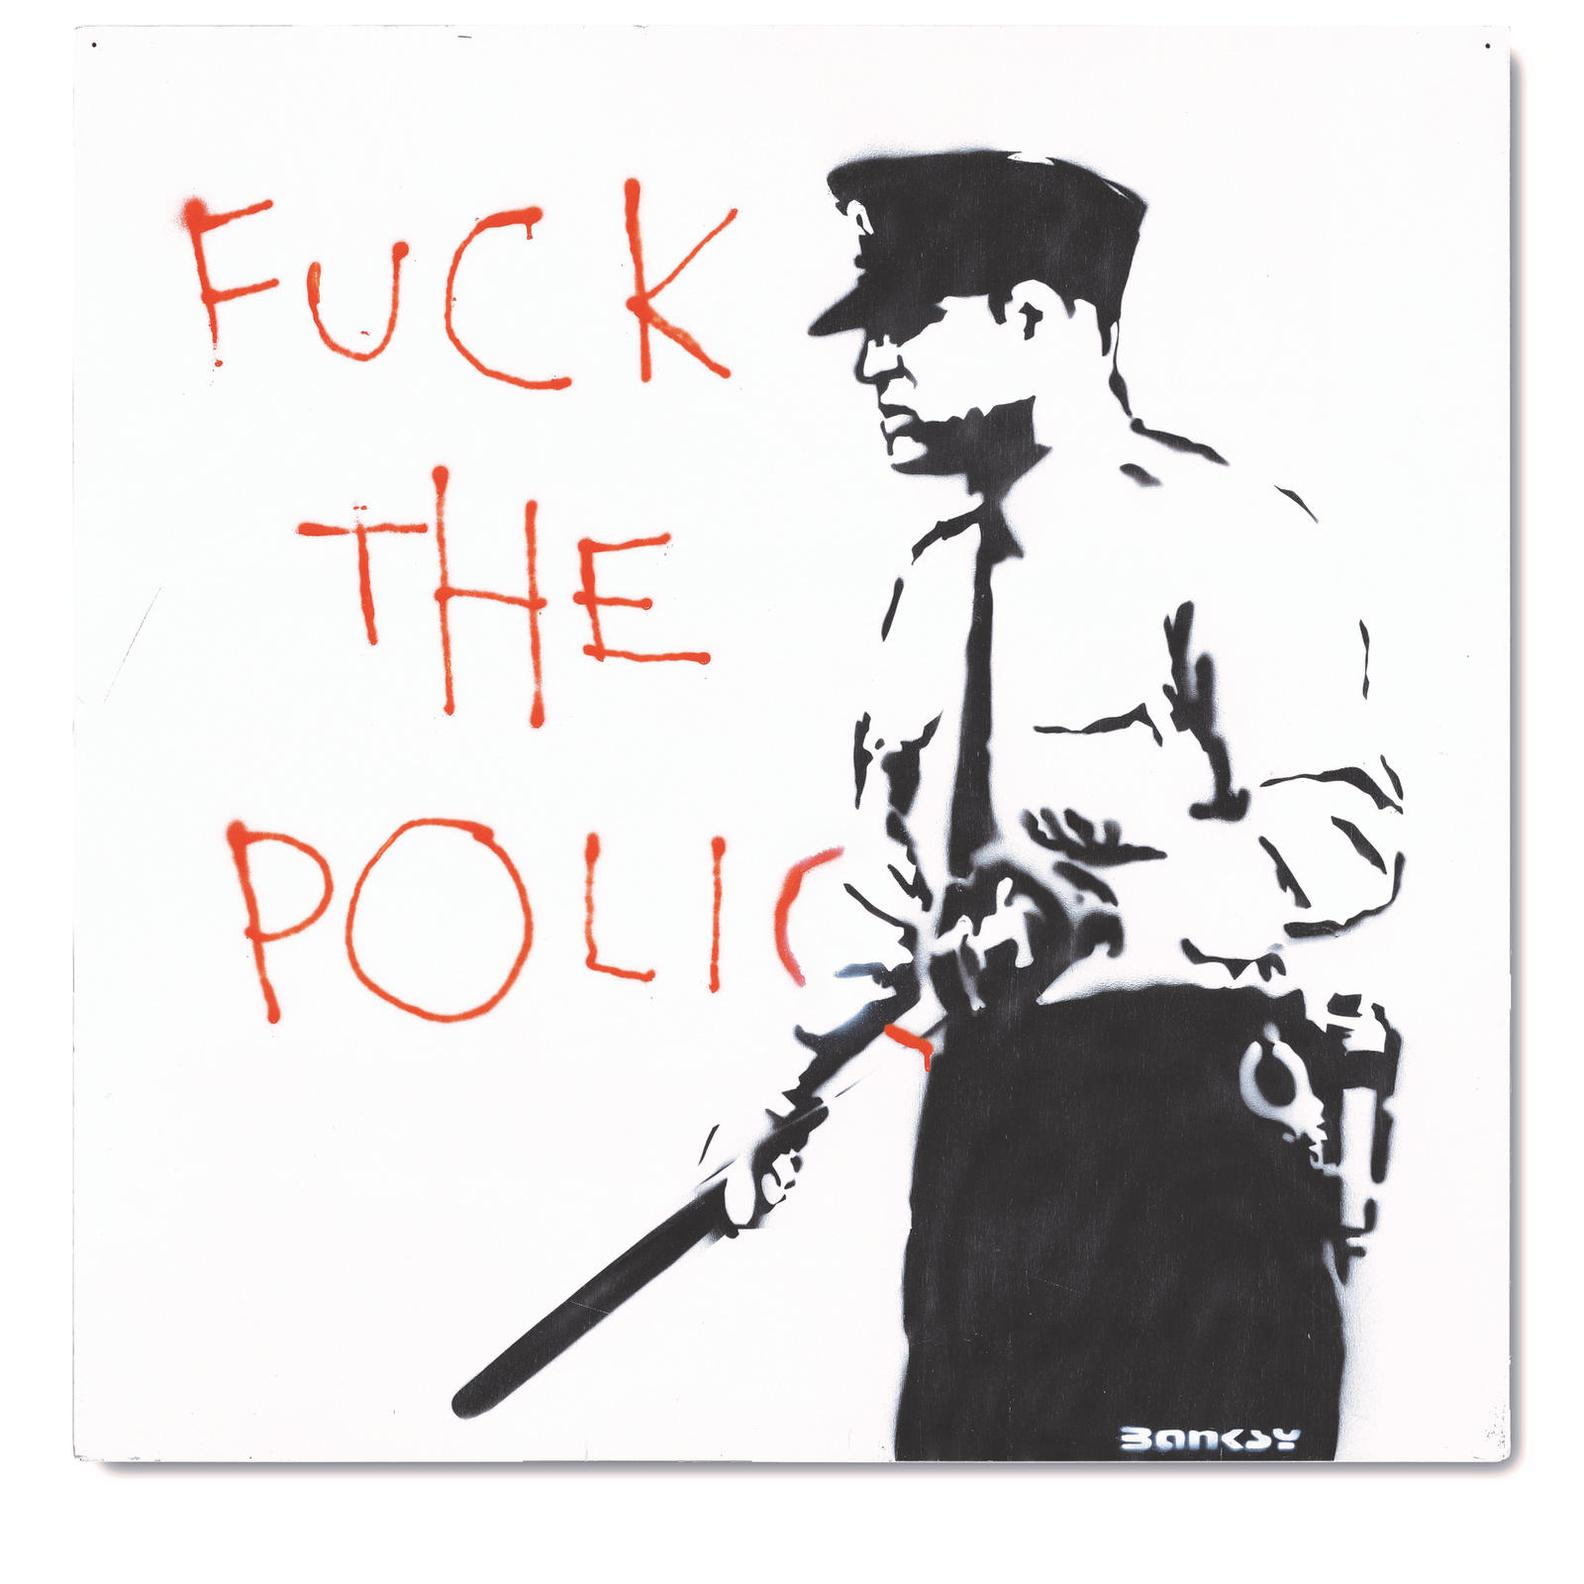 Don't fuck cops